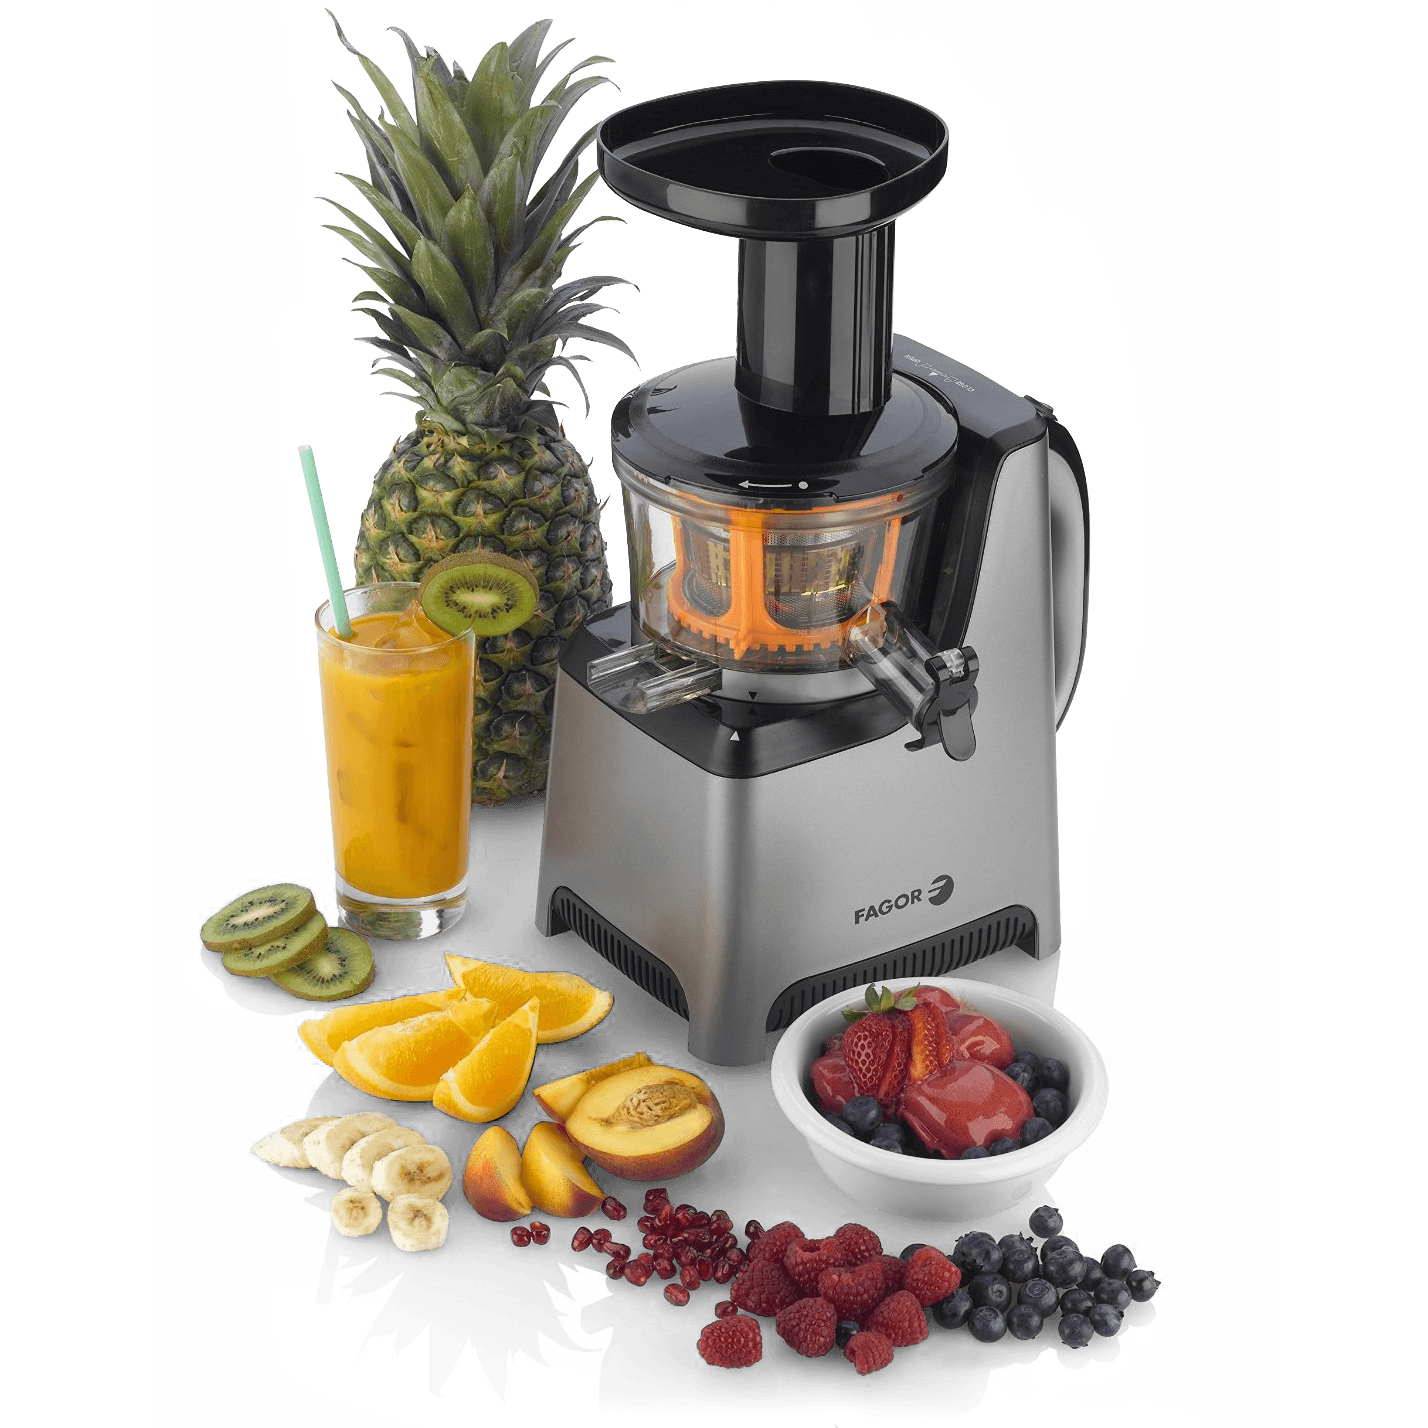 Fagor Slow Juicer Manual : Fagor Platino Plus Slow Juicer and Sorbet Maker